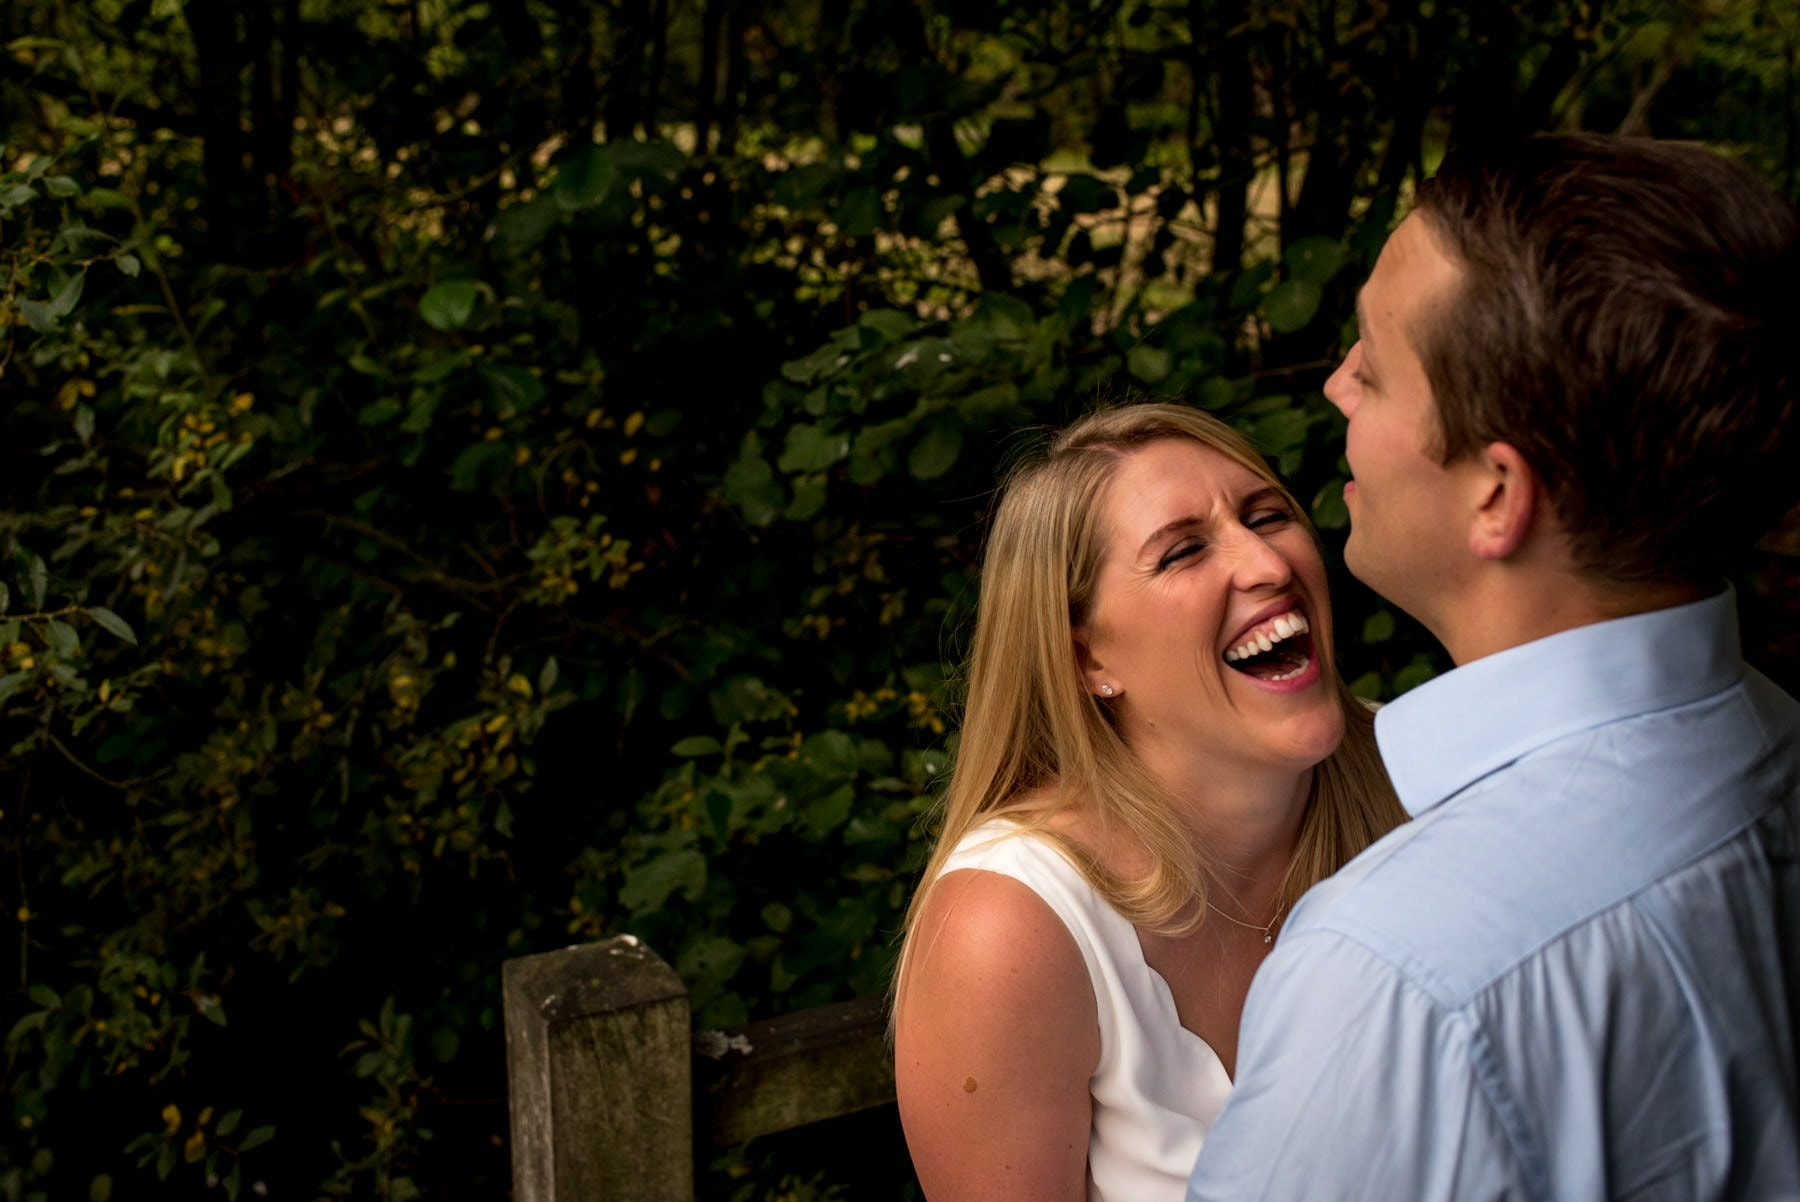 Photo of a women laughing really hard as her fiance hugs her in a park